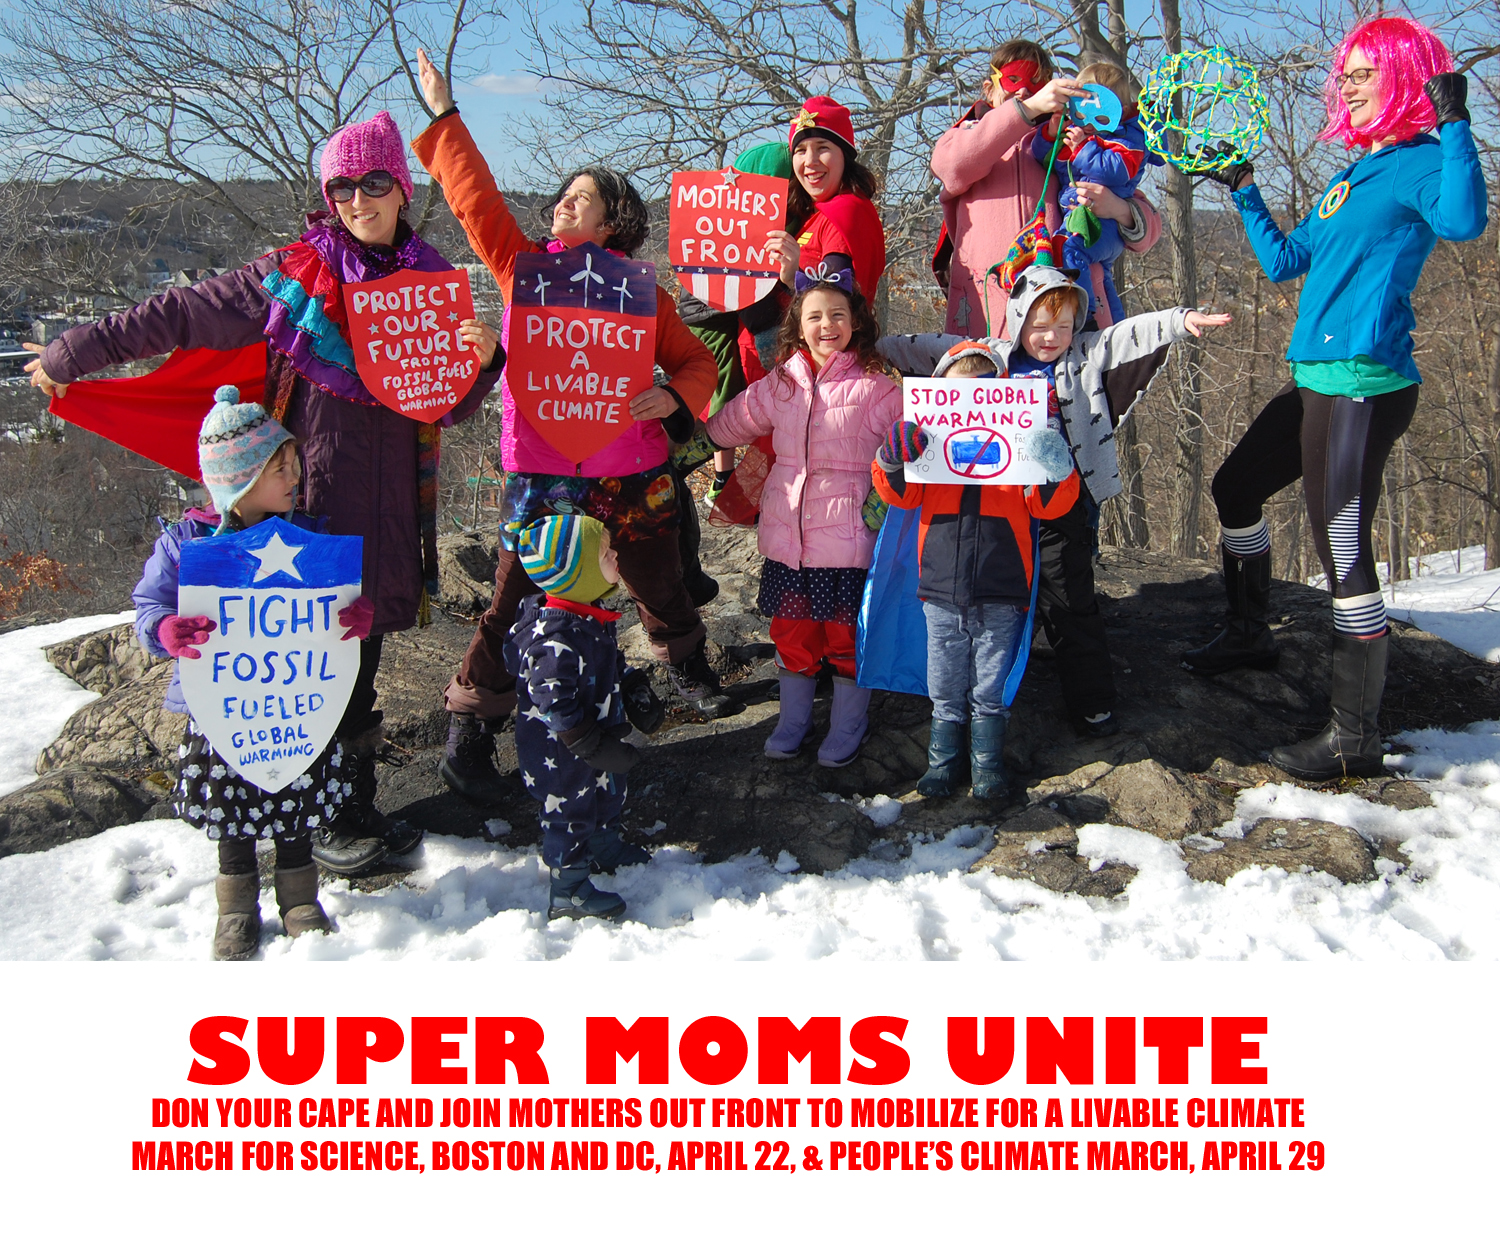 supermomsunite.jpg